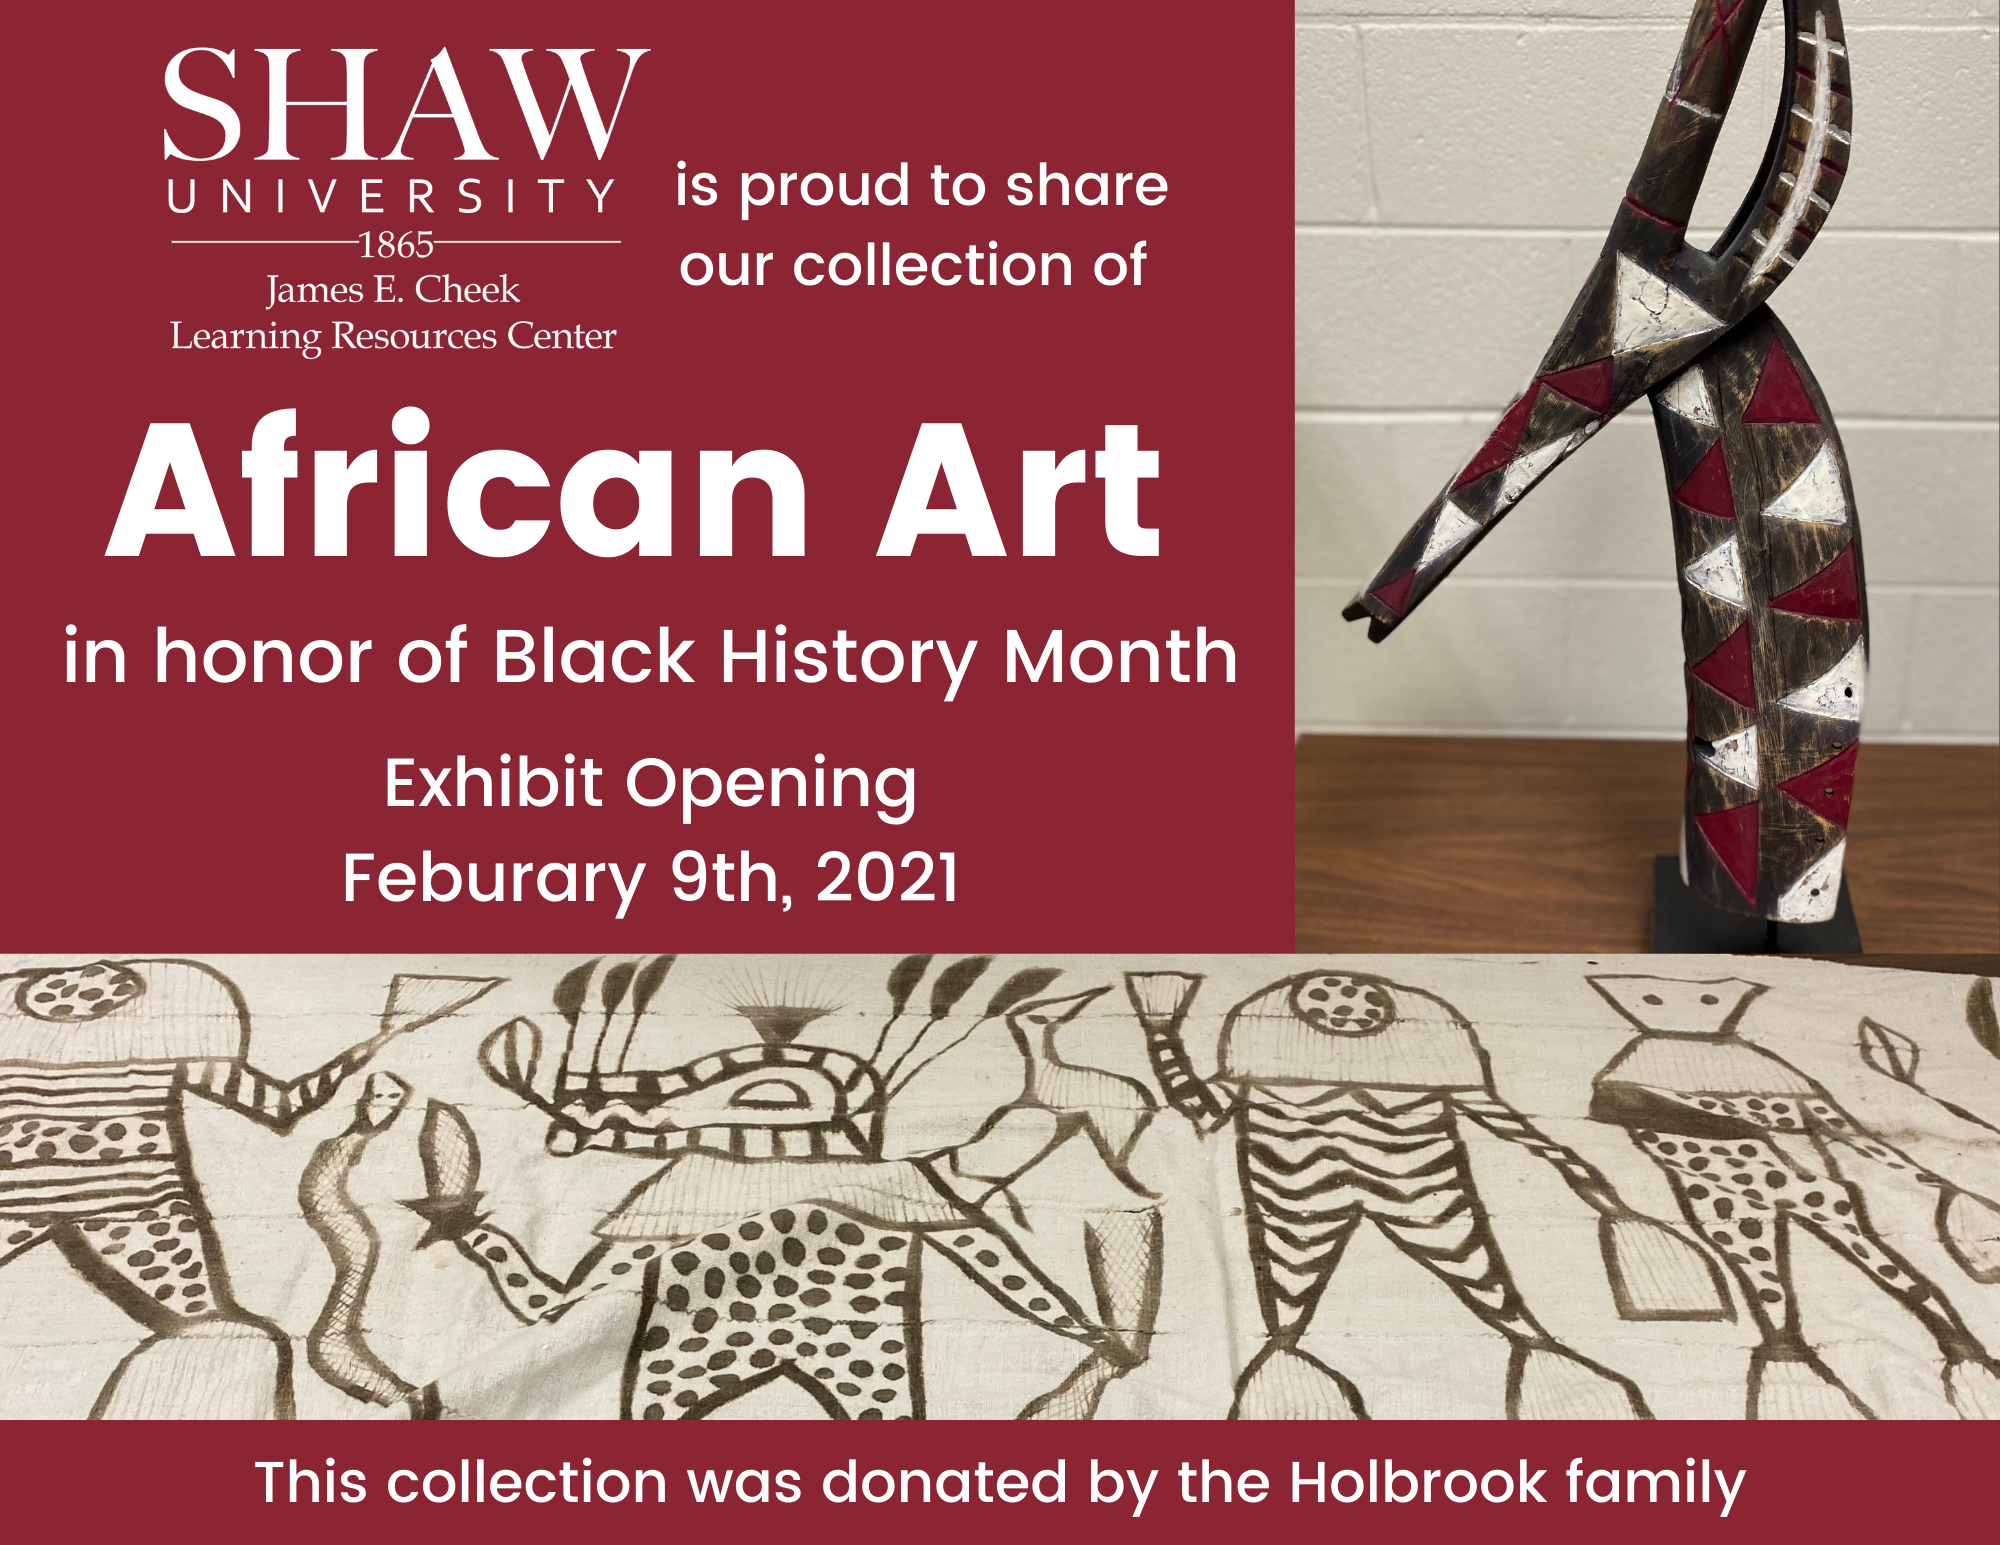 Antelope headdress and african tribal designed cloth on a flyer with a notification of an African Art display at the library